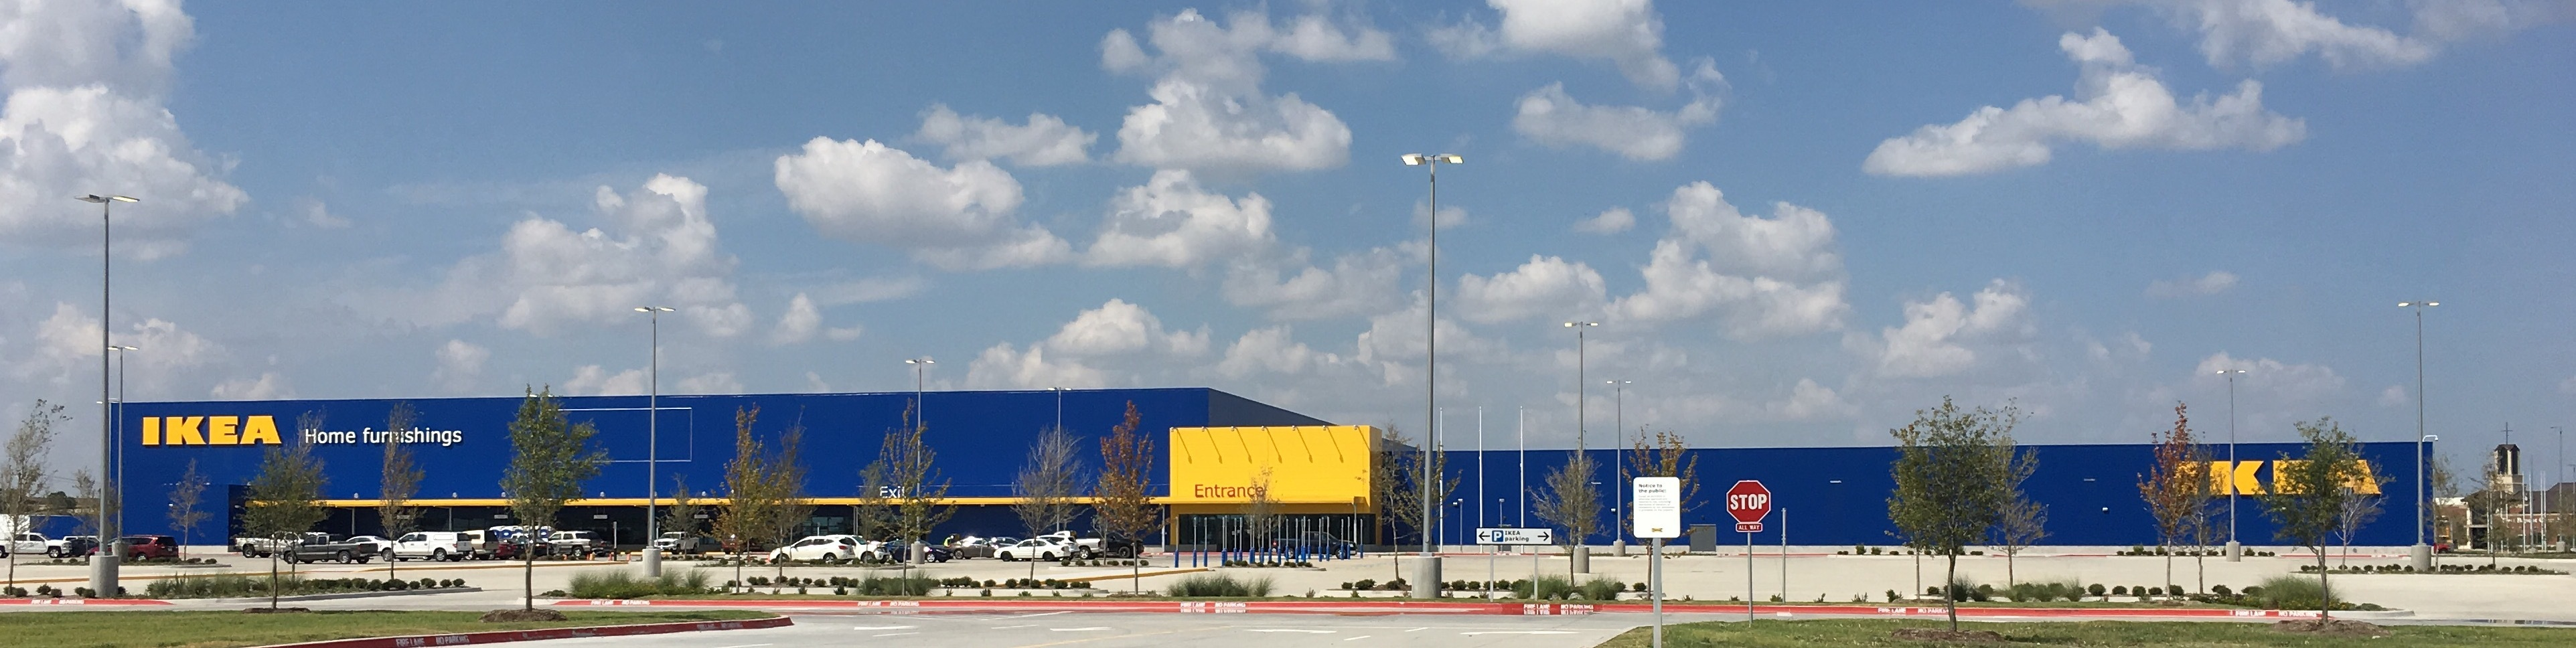 Ikea grand prairie to open on december 13 2017 business for Ikea in dallas